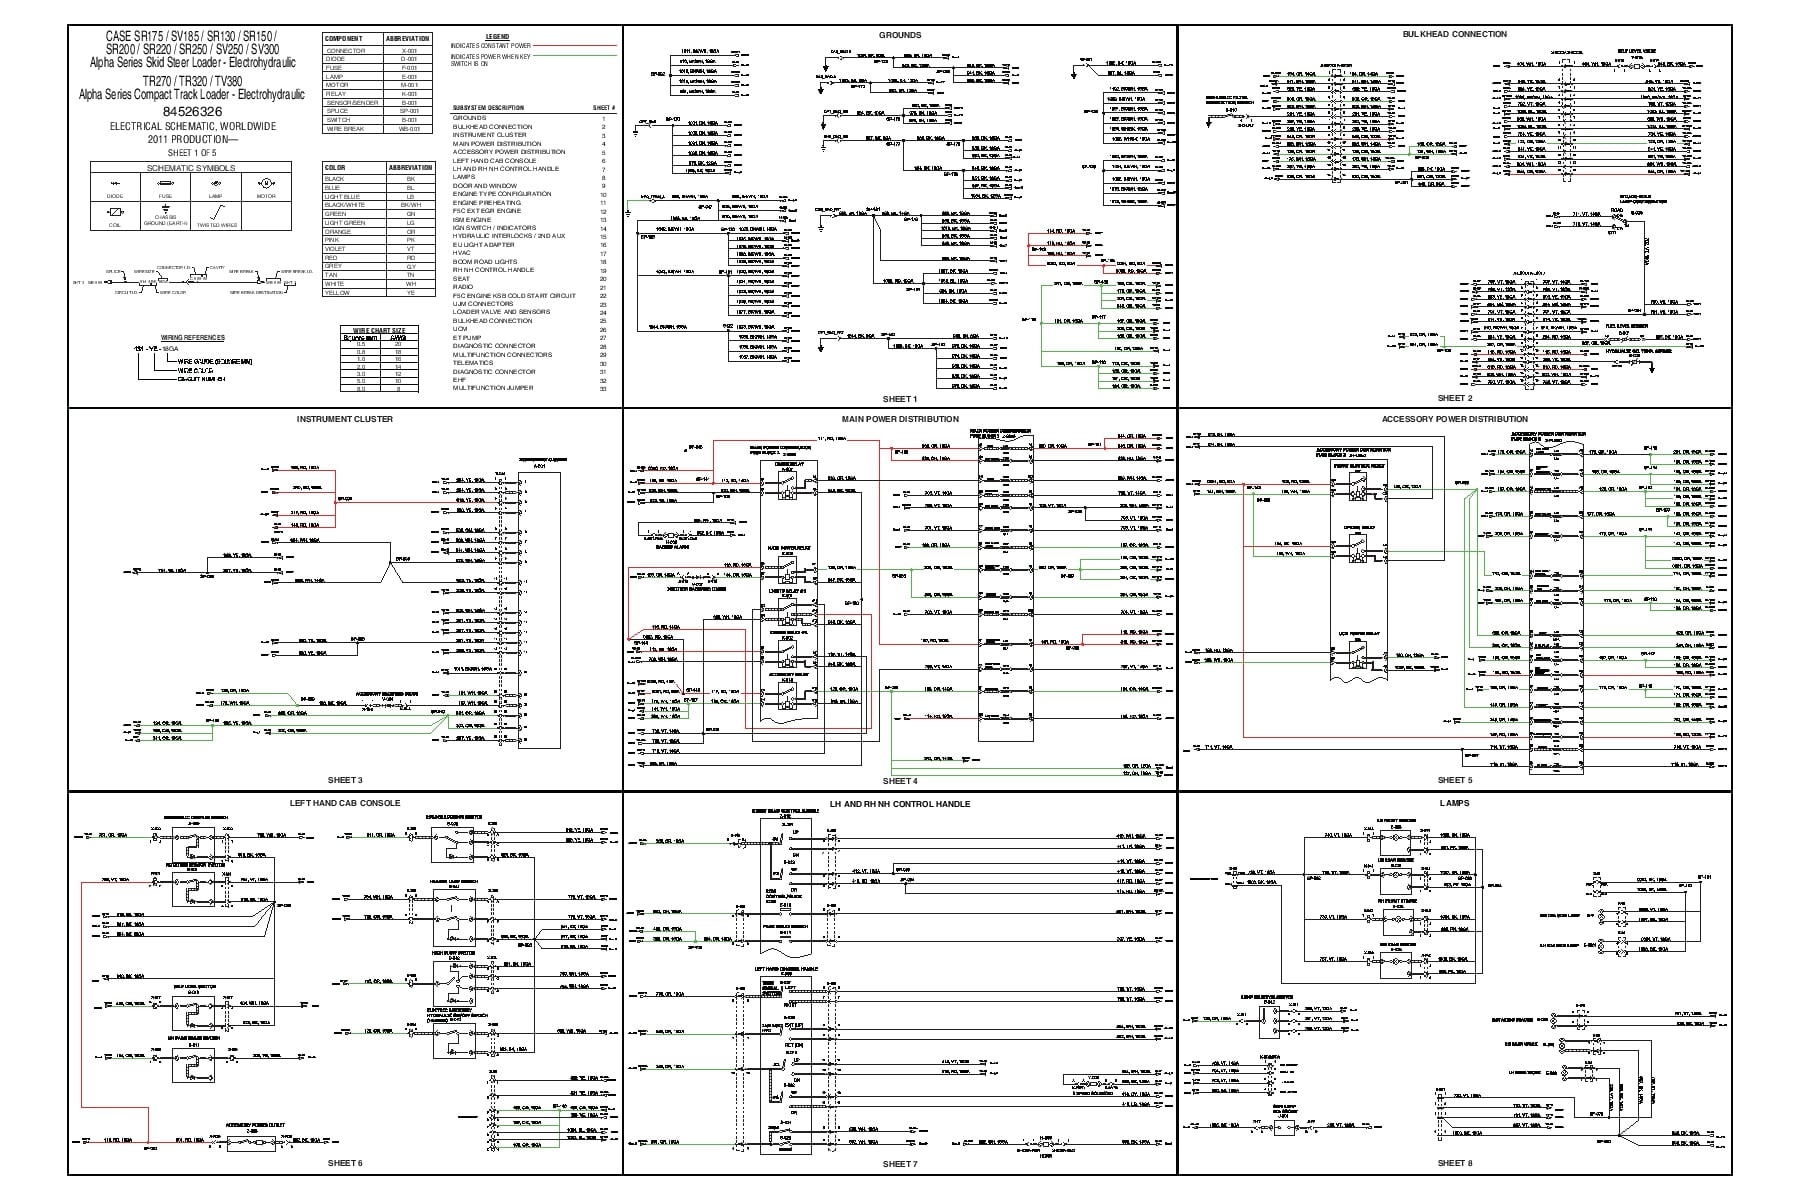 Case Sr Sv Sr Sr Sr Sr Sr Sv Sv Tr Tr Tv Alpha Series Loaderelectrical Schematic Pdf Download on Kenwood Wiring Harness Diagram